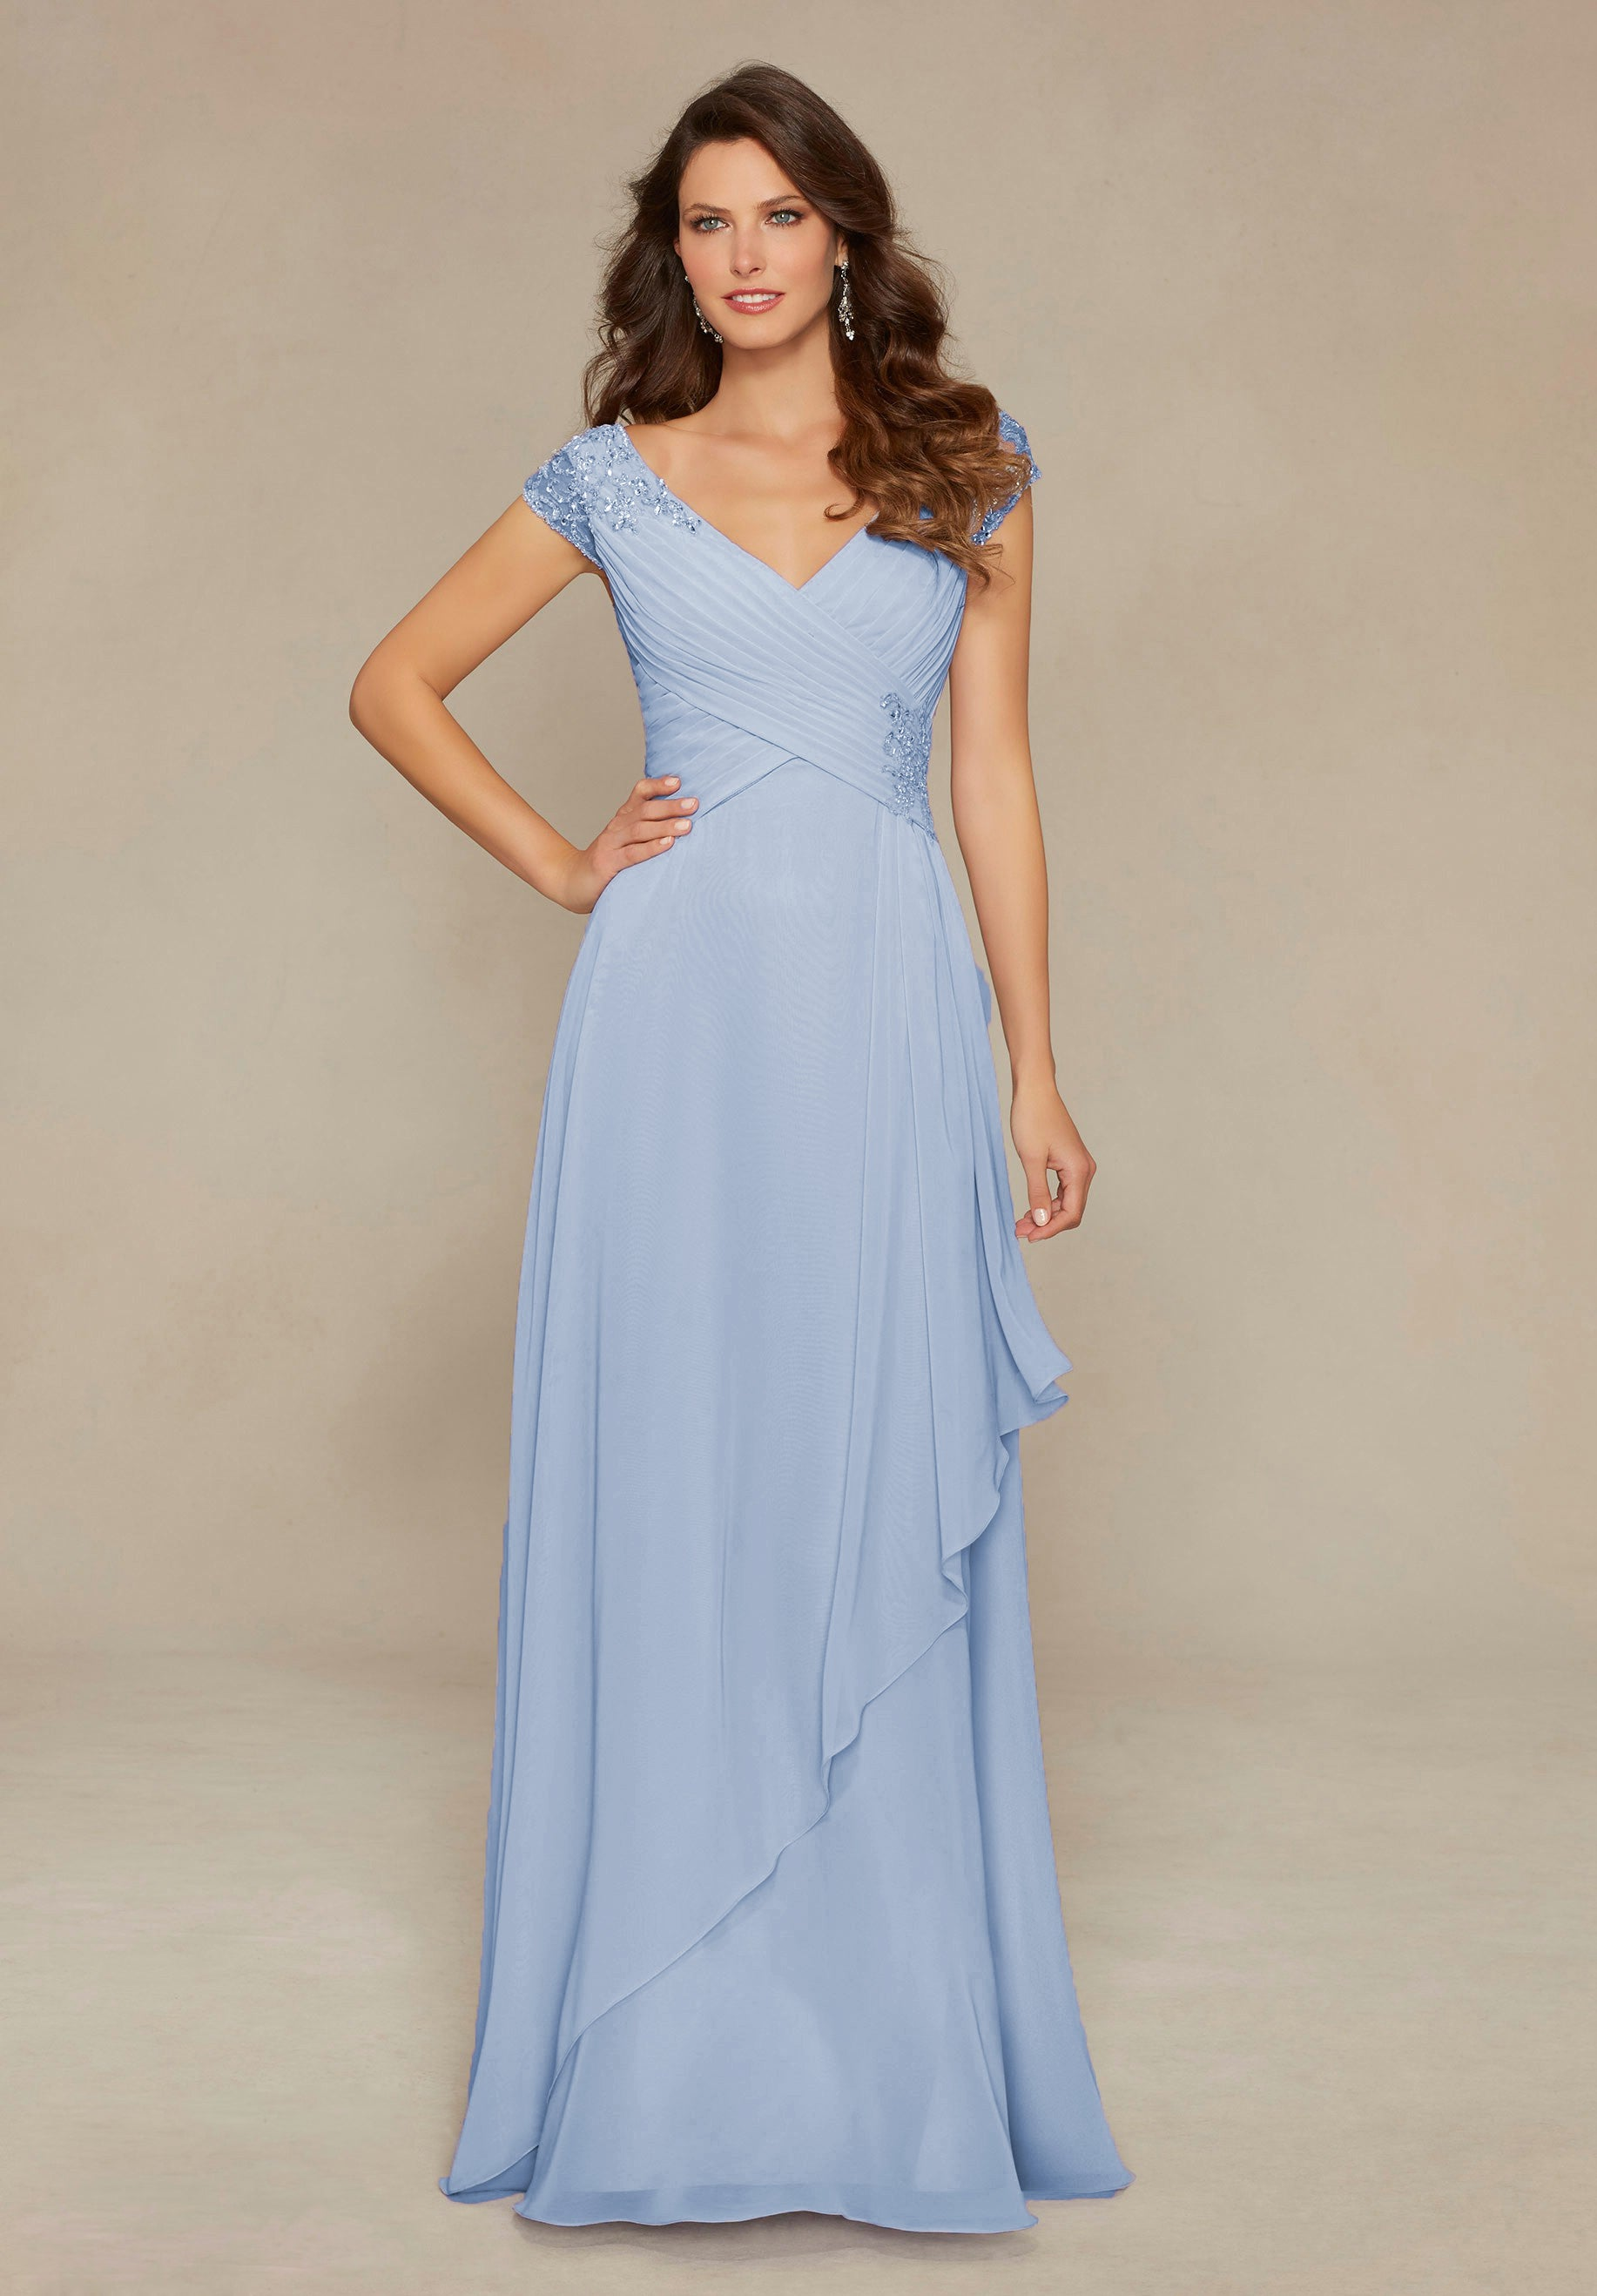 1a436210bd9 Evening Dresses Baby Blue - Gomes Weine AG